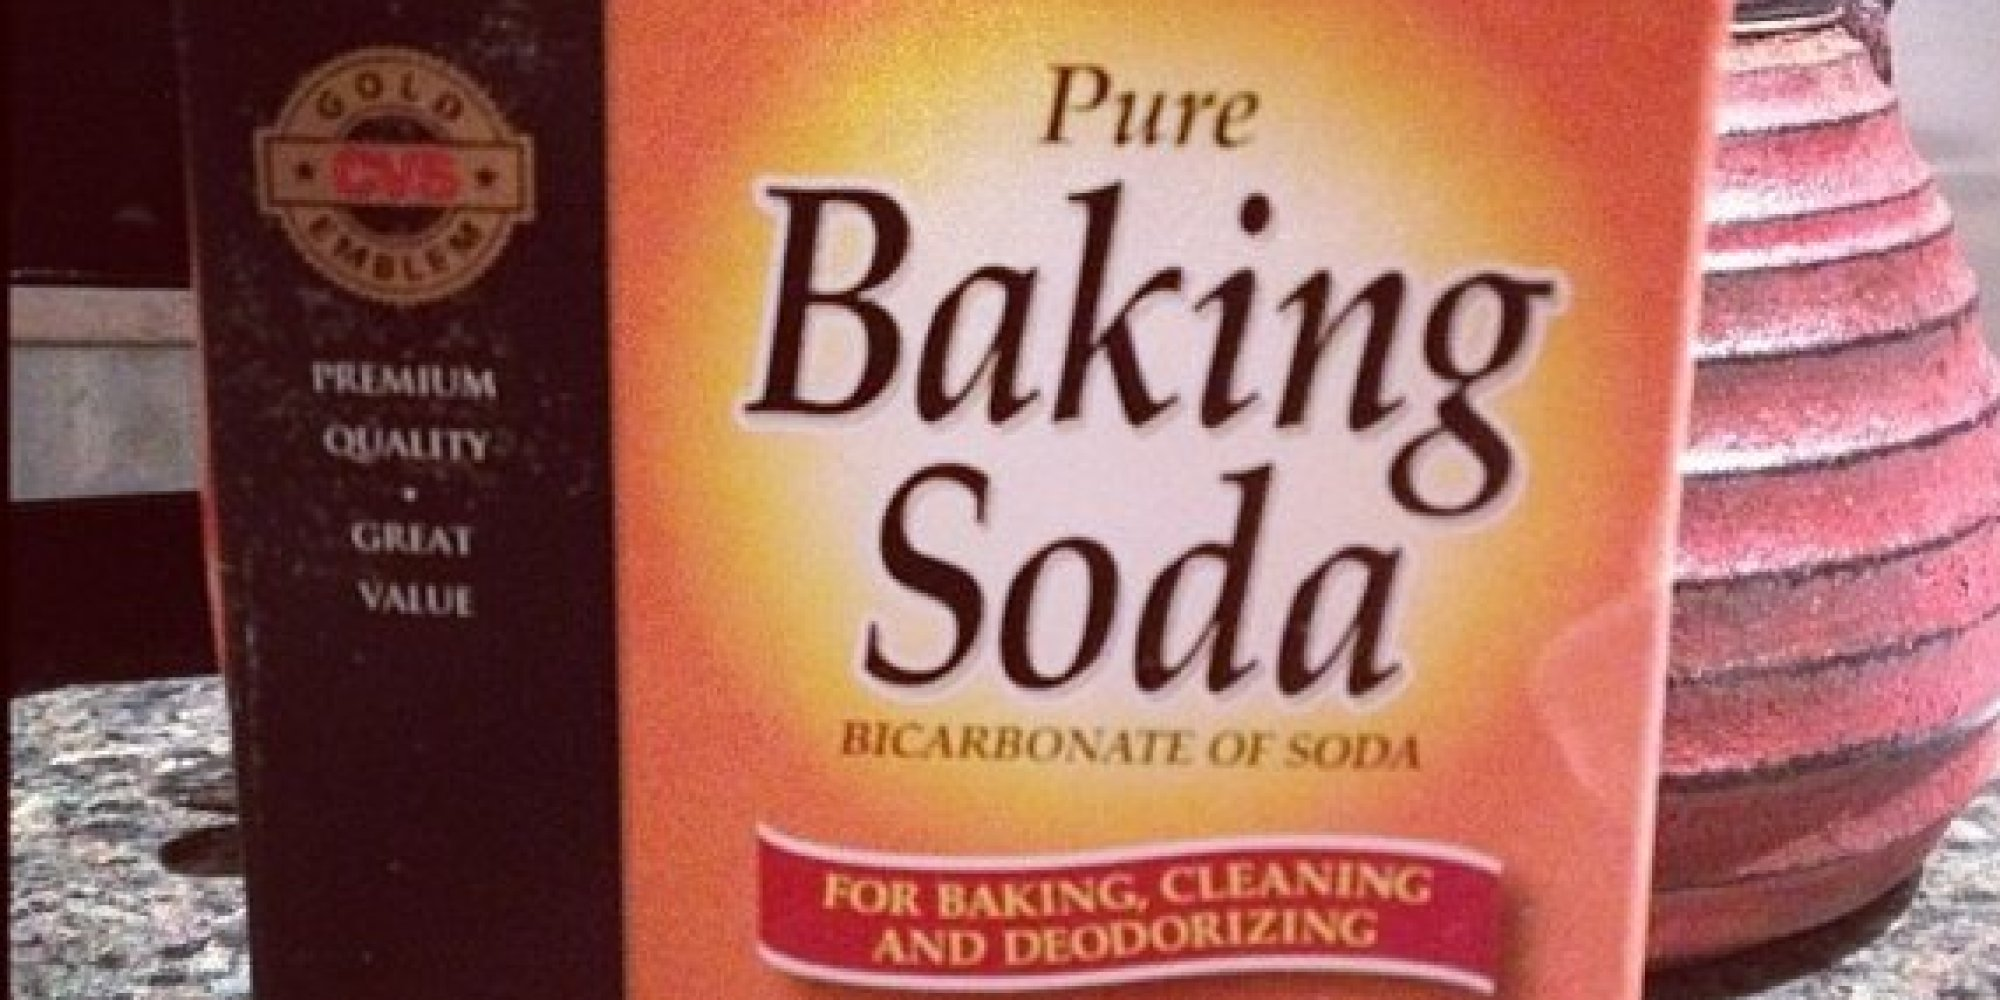 13 amazing uses for baking soda you should know huffpost - Unknown uses of baking soda ...